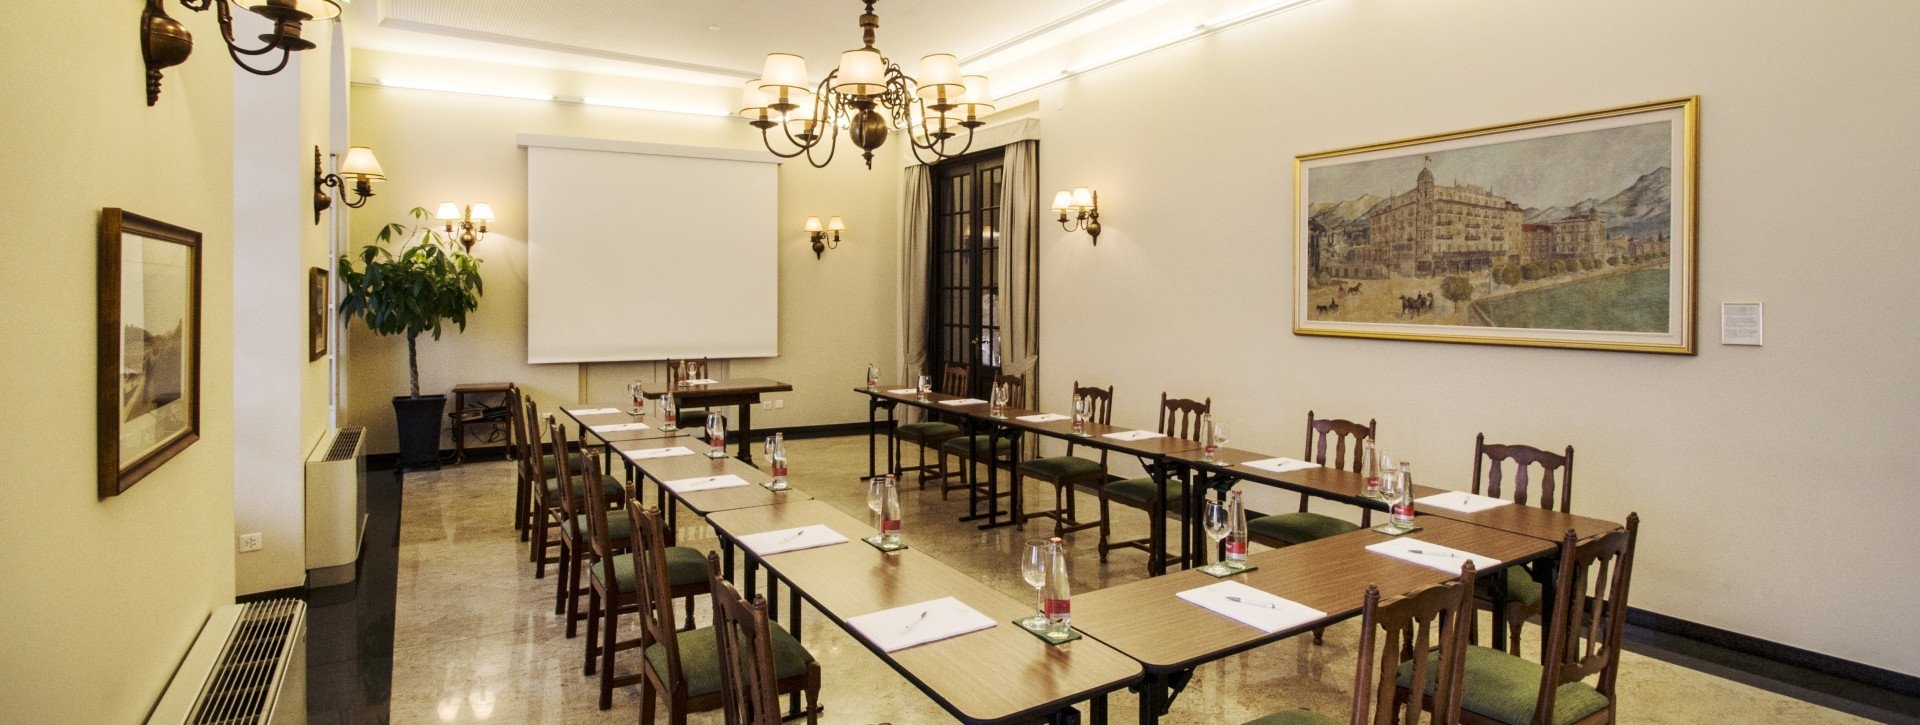 "Long table in the ""Granito"" conference room"